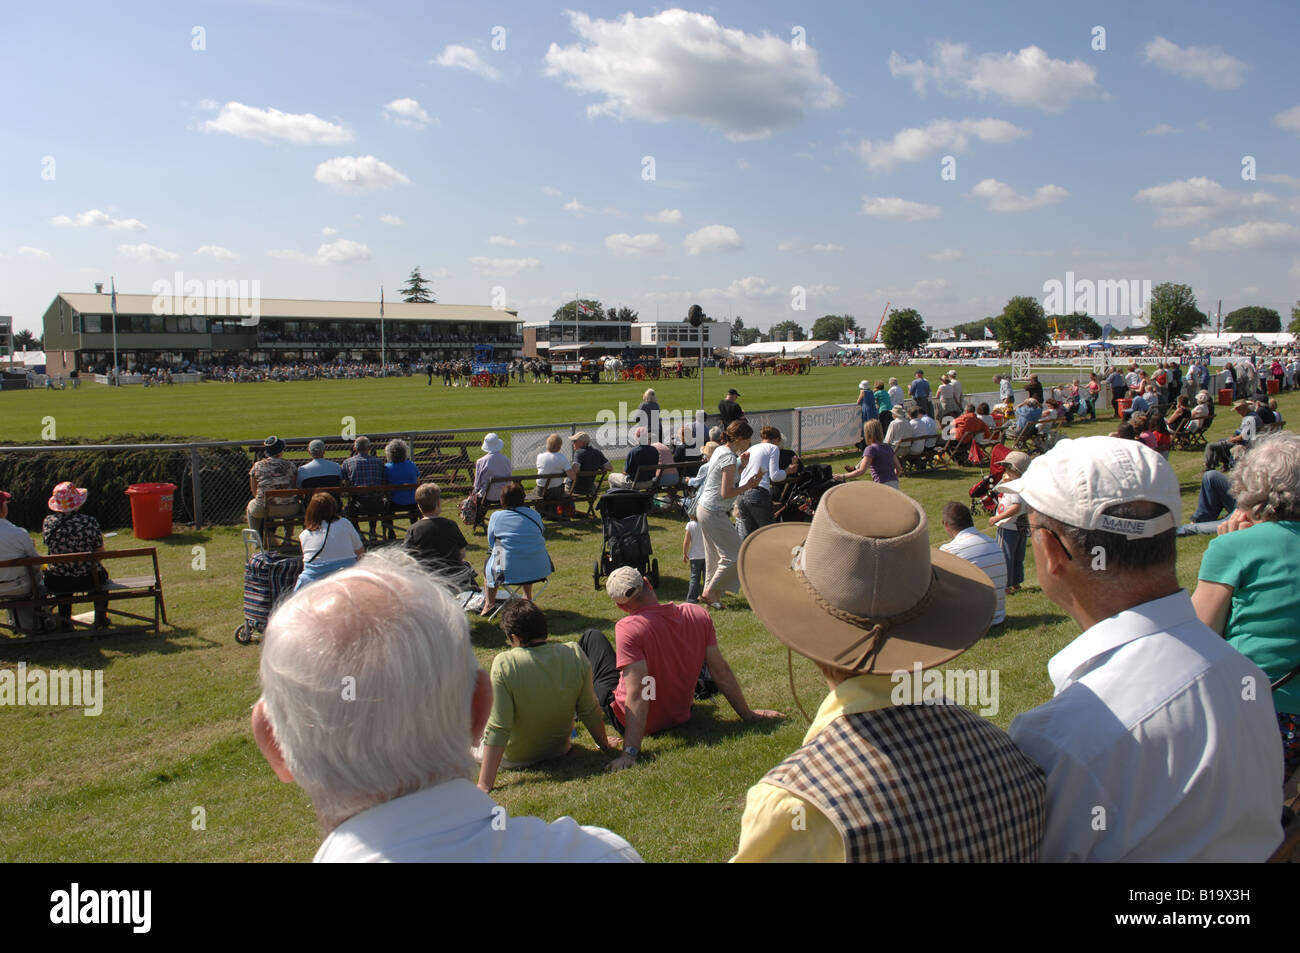 The main arena at the South of England Show in Ardingly Sussex UK June 2008 - Stock Image